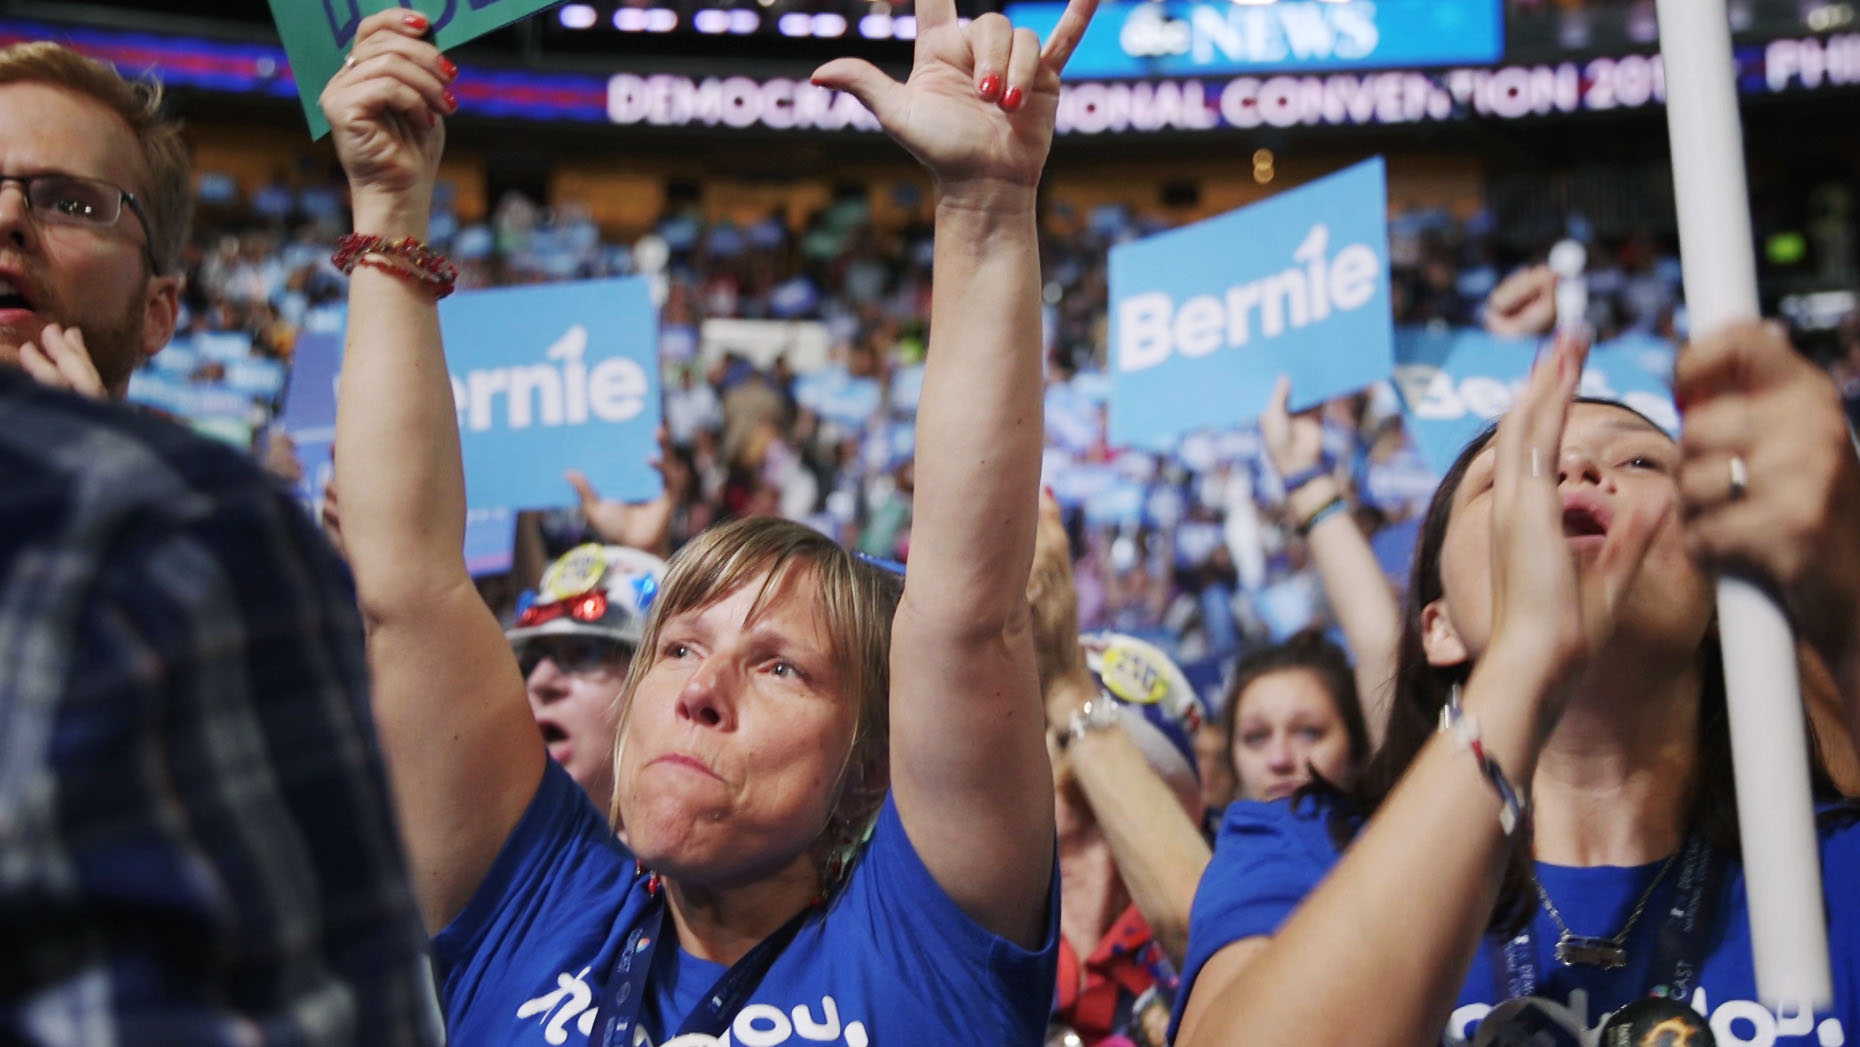 Bernie Sanders supporters protest at the Democratic national convention in Philadelphia.